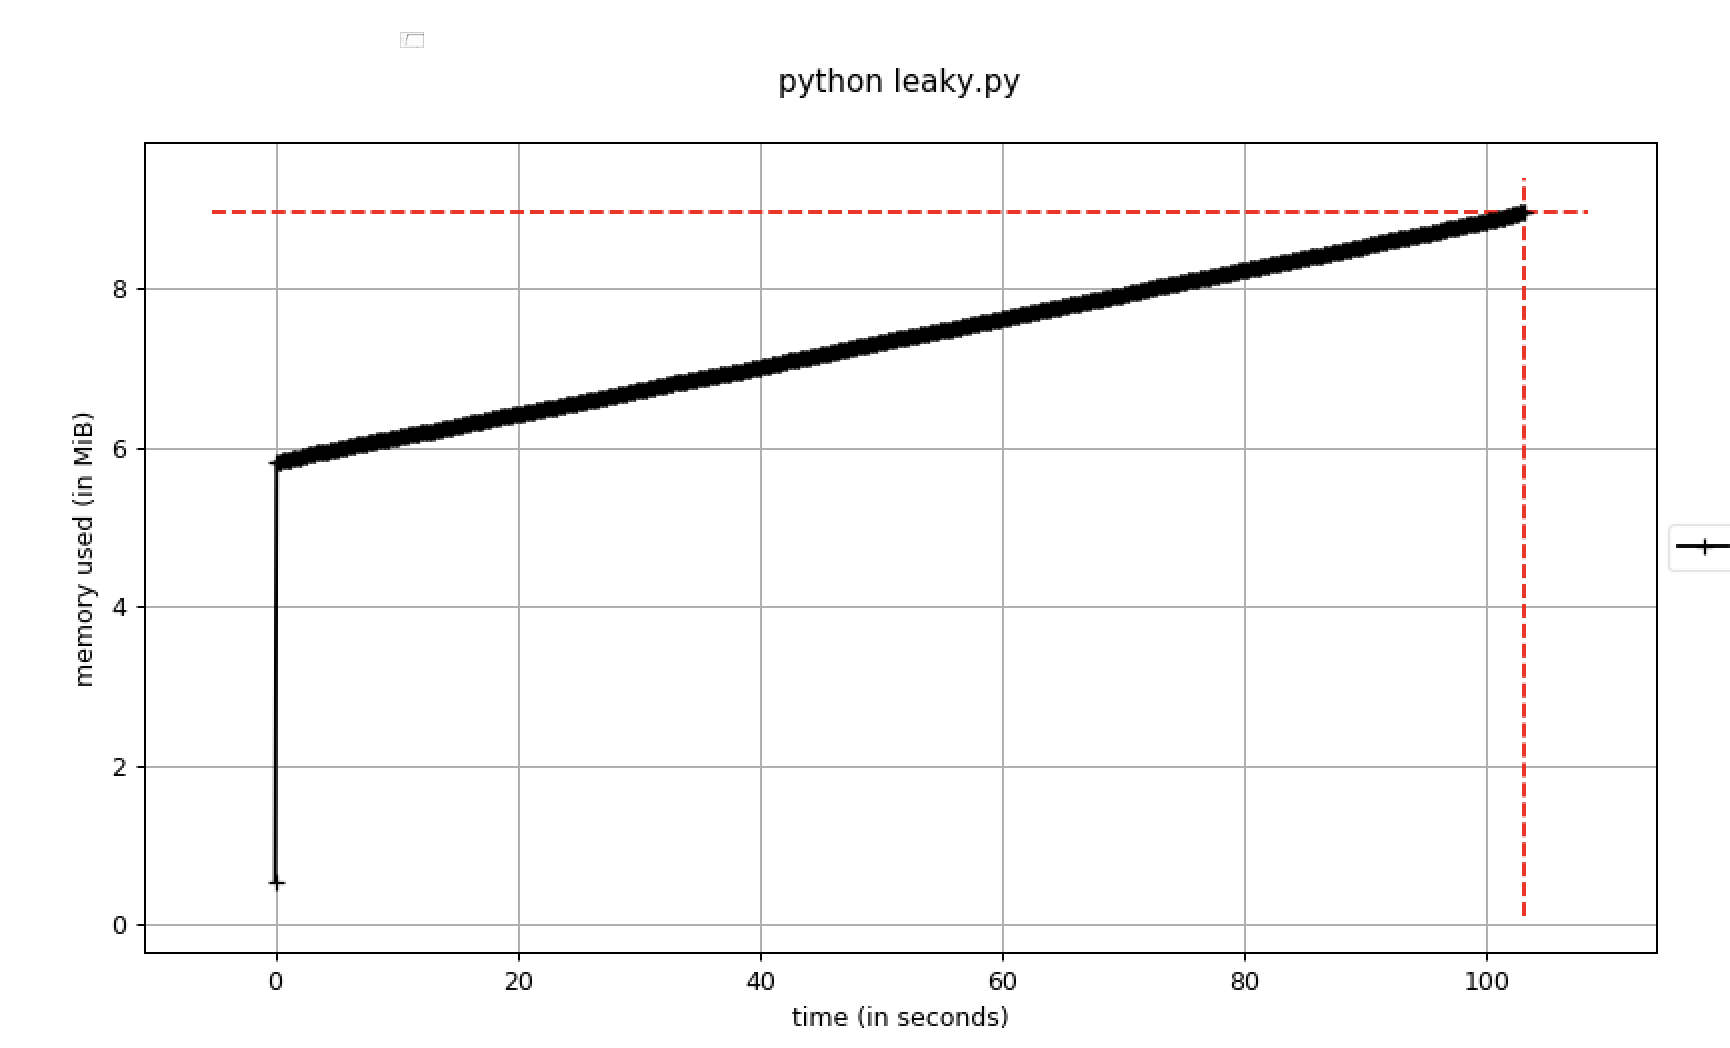 Hunting for Memory Leaks in Python applications - Zendesk